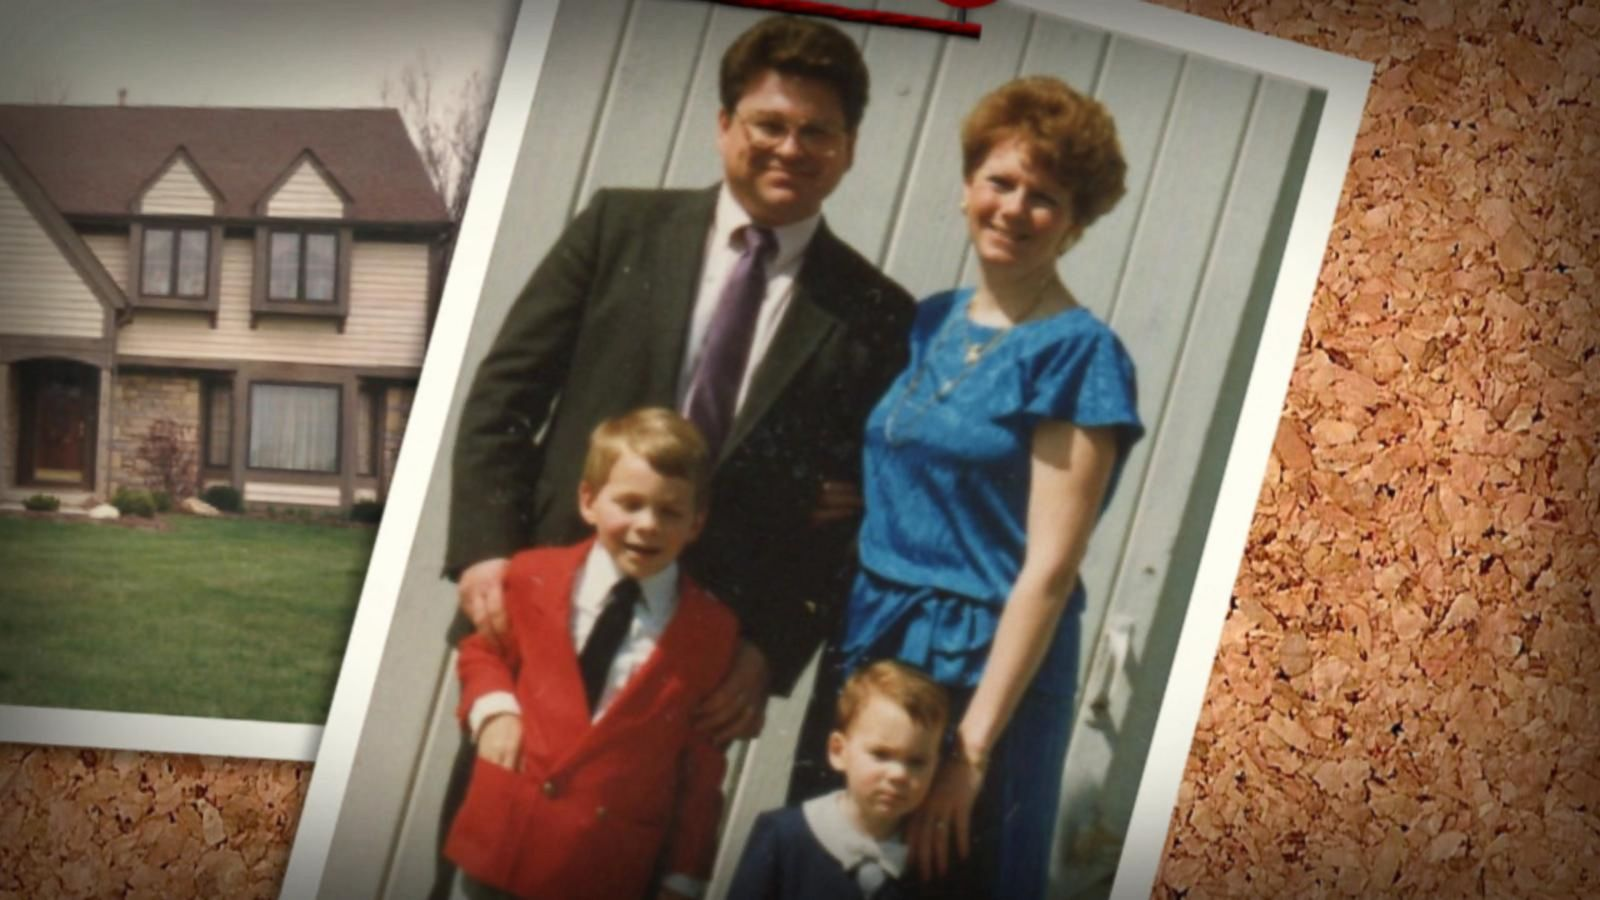 VIDEO: How Missing Man's Family Found Him Alive 23 Years Later